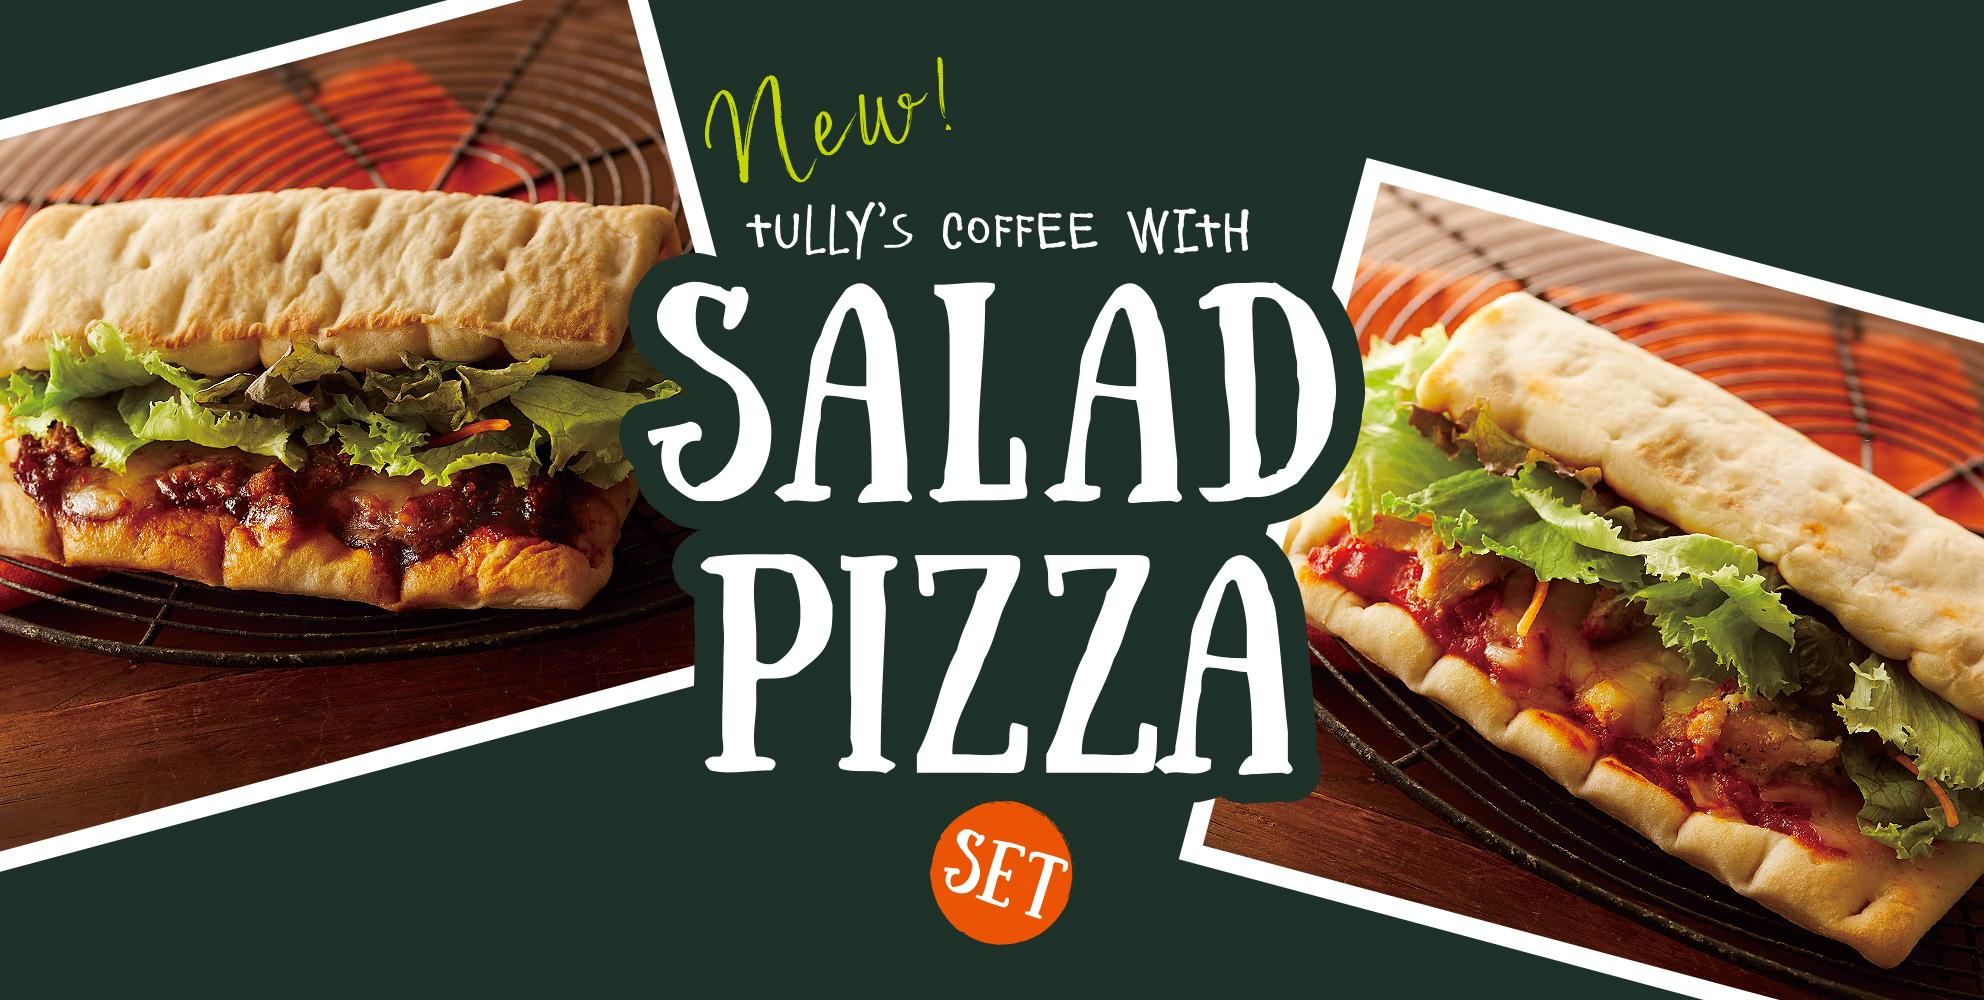 COFFEE WITH SALAD PIZZA SET